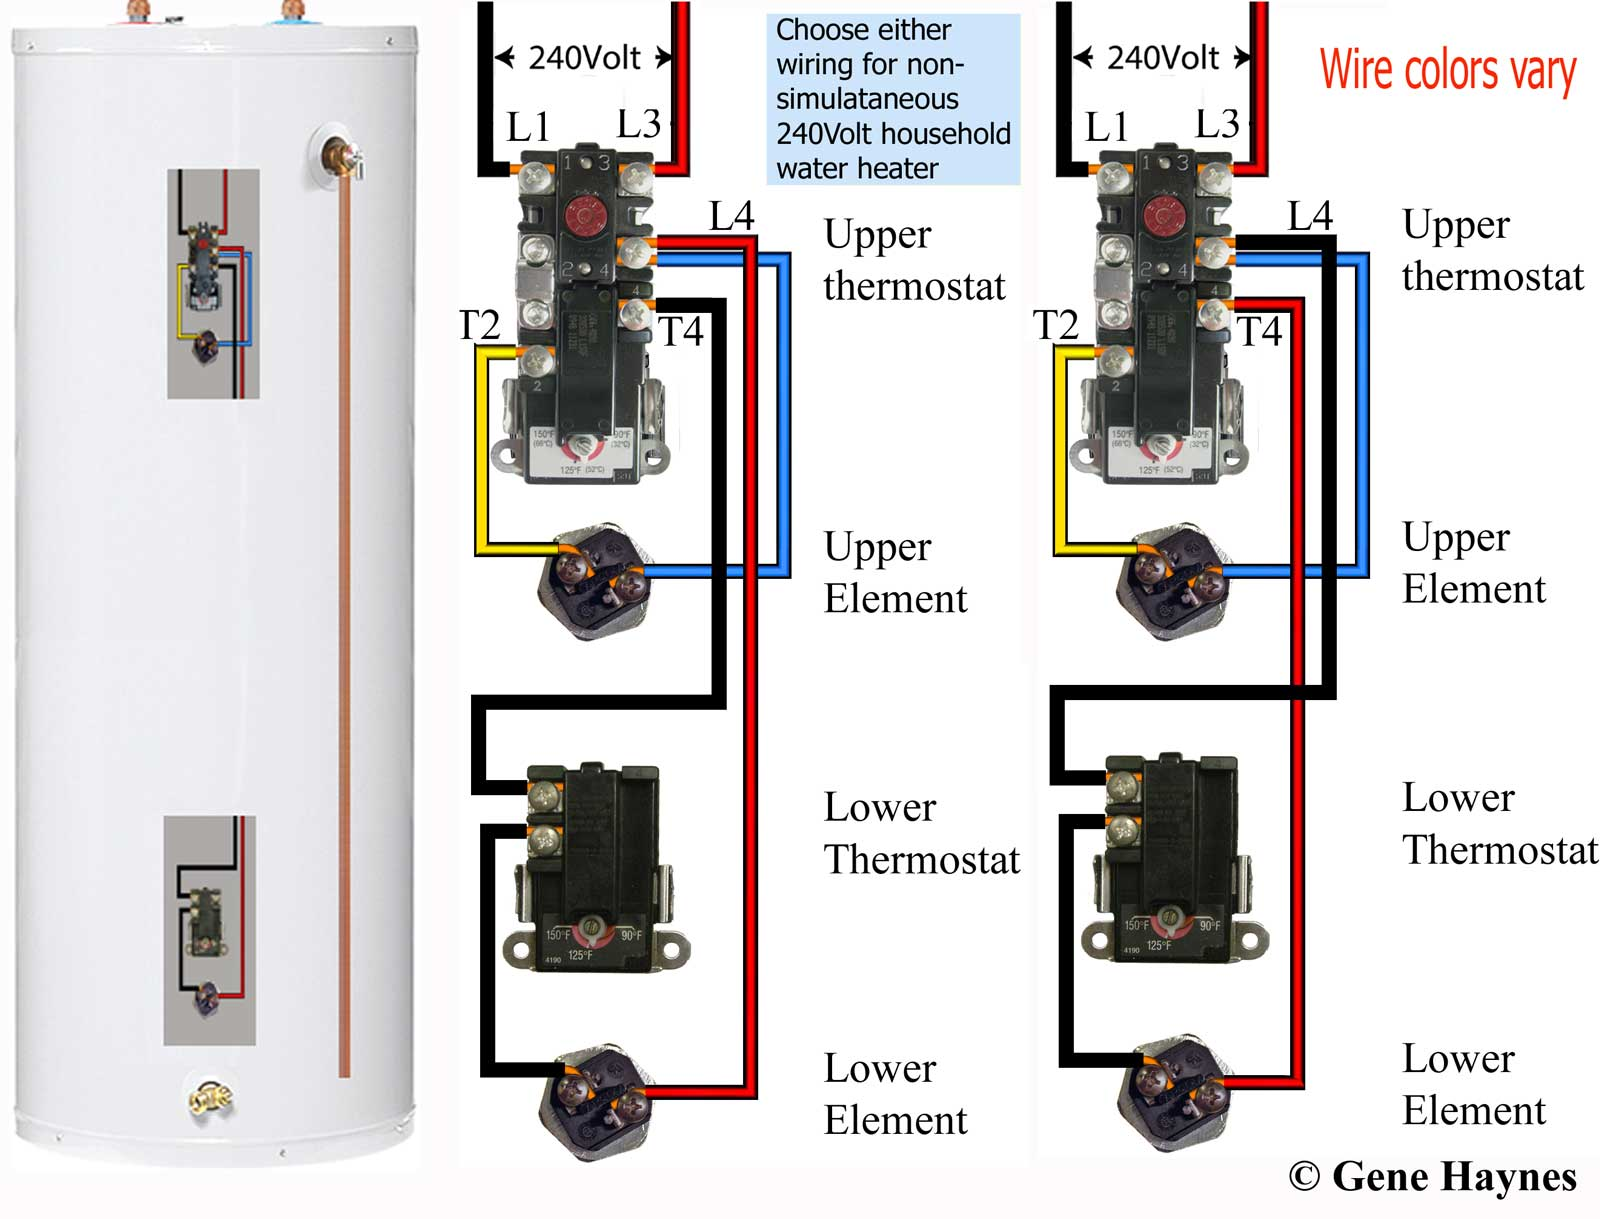 hight resolution of wiring diagram illustrated on right will not prevent cracked element it will only mask problem of cracked element on lower element and prevent cracked